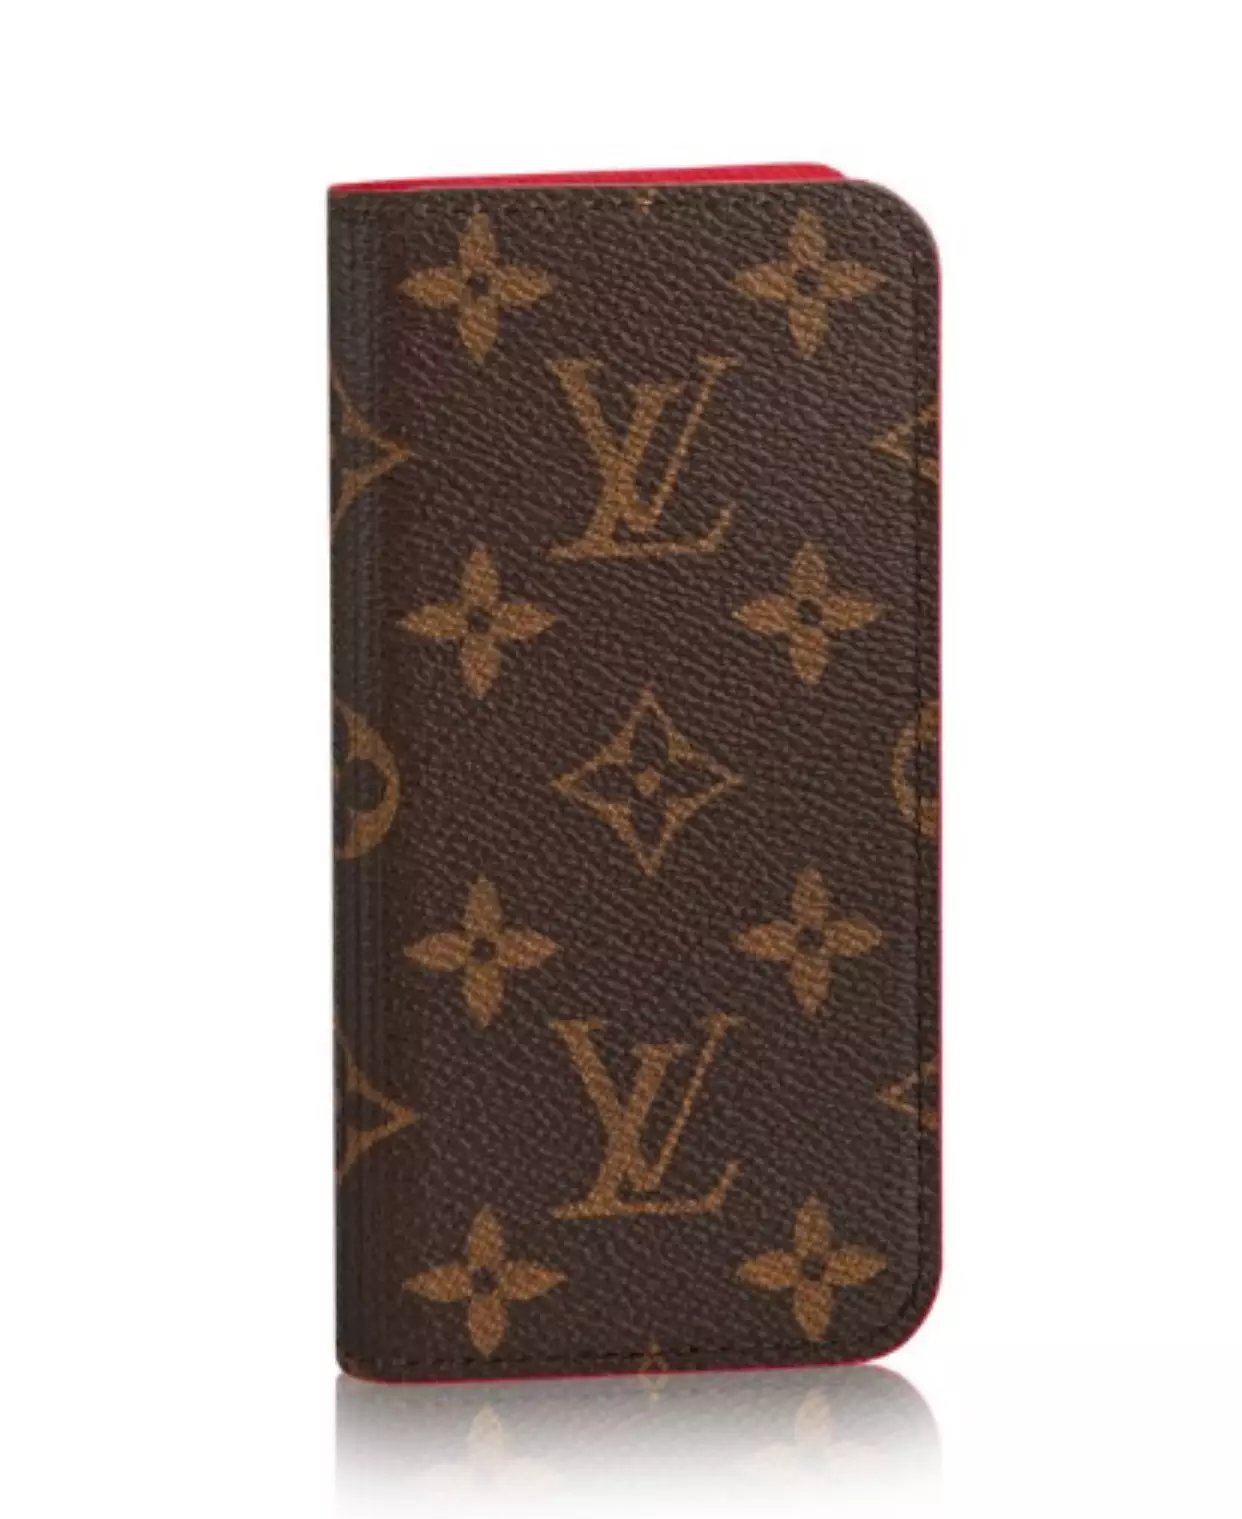 iphone handyhülle iphone hülle selber gestalten günstig Louis Vuitton iphone 8 Plus hüllen ca8 Plus handy 8 Pluslbst gestalten schutzhülle 8 Plus witzige iphone hüllen iphone schutzhülle test samsung gala8 Plusy oder iphone handy iphone 8 Plus